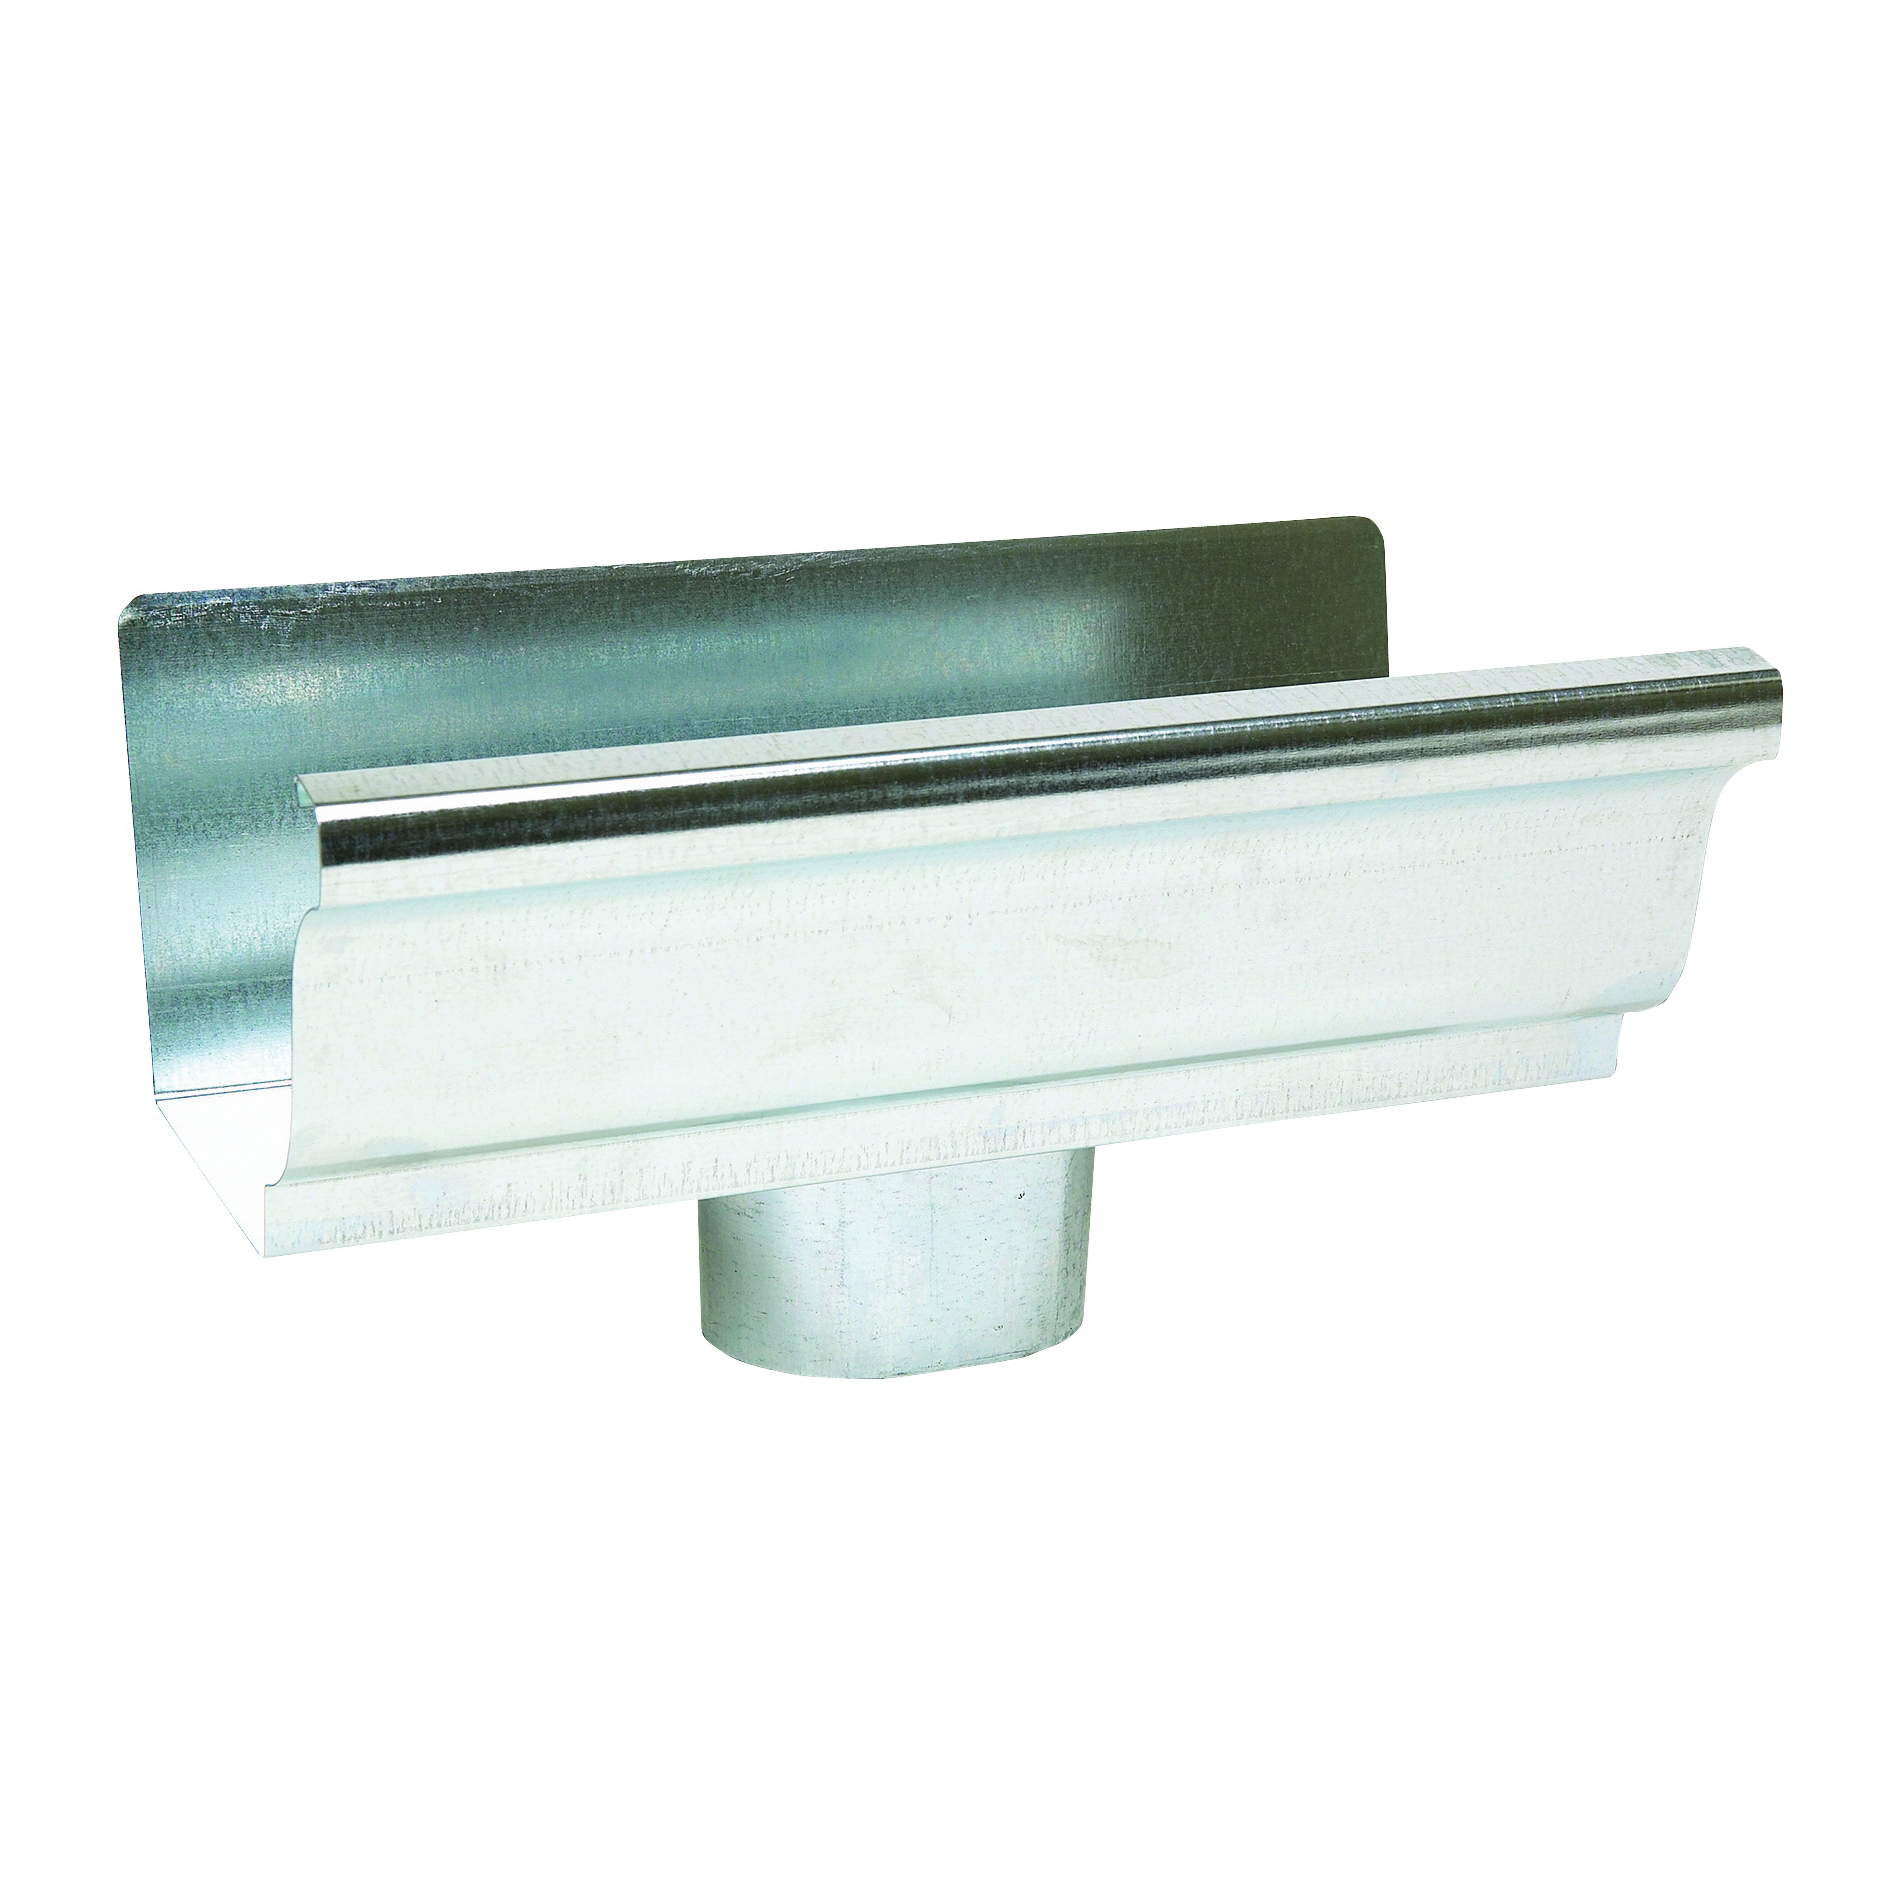 Picture of Amerimax 29010 Gutter End with Drop, 4 in L, 3 in W, Vinyl, For: 5 in K-Style Gutter System